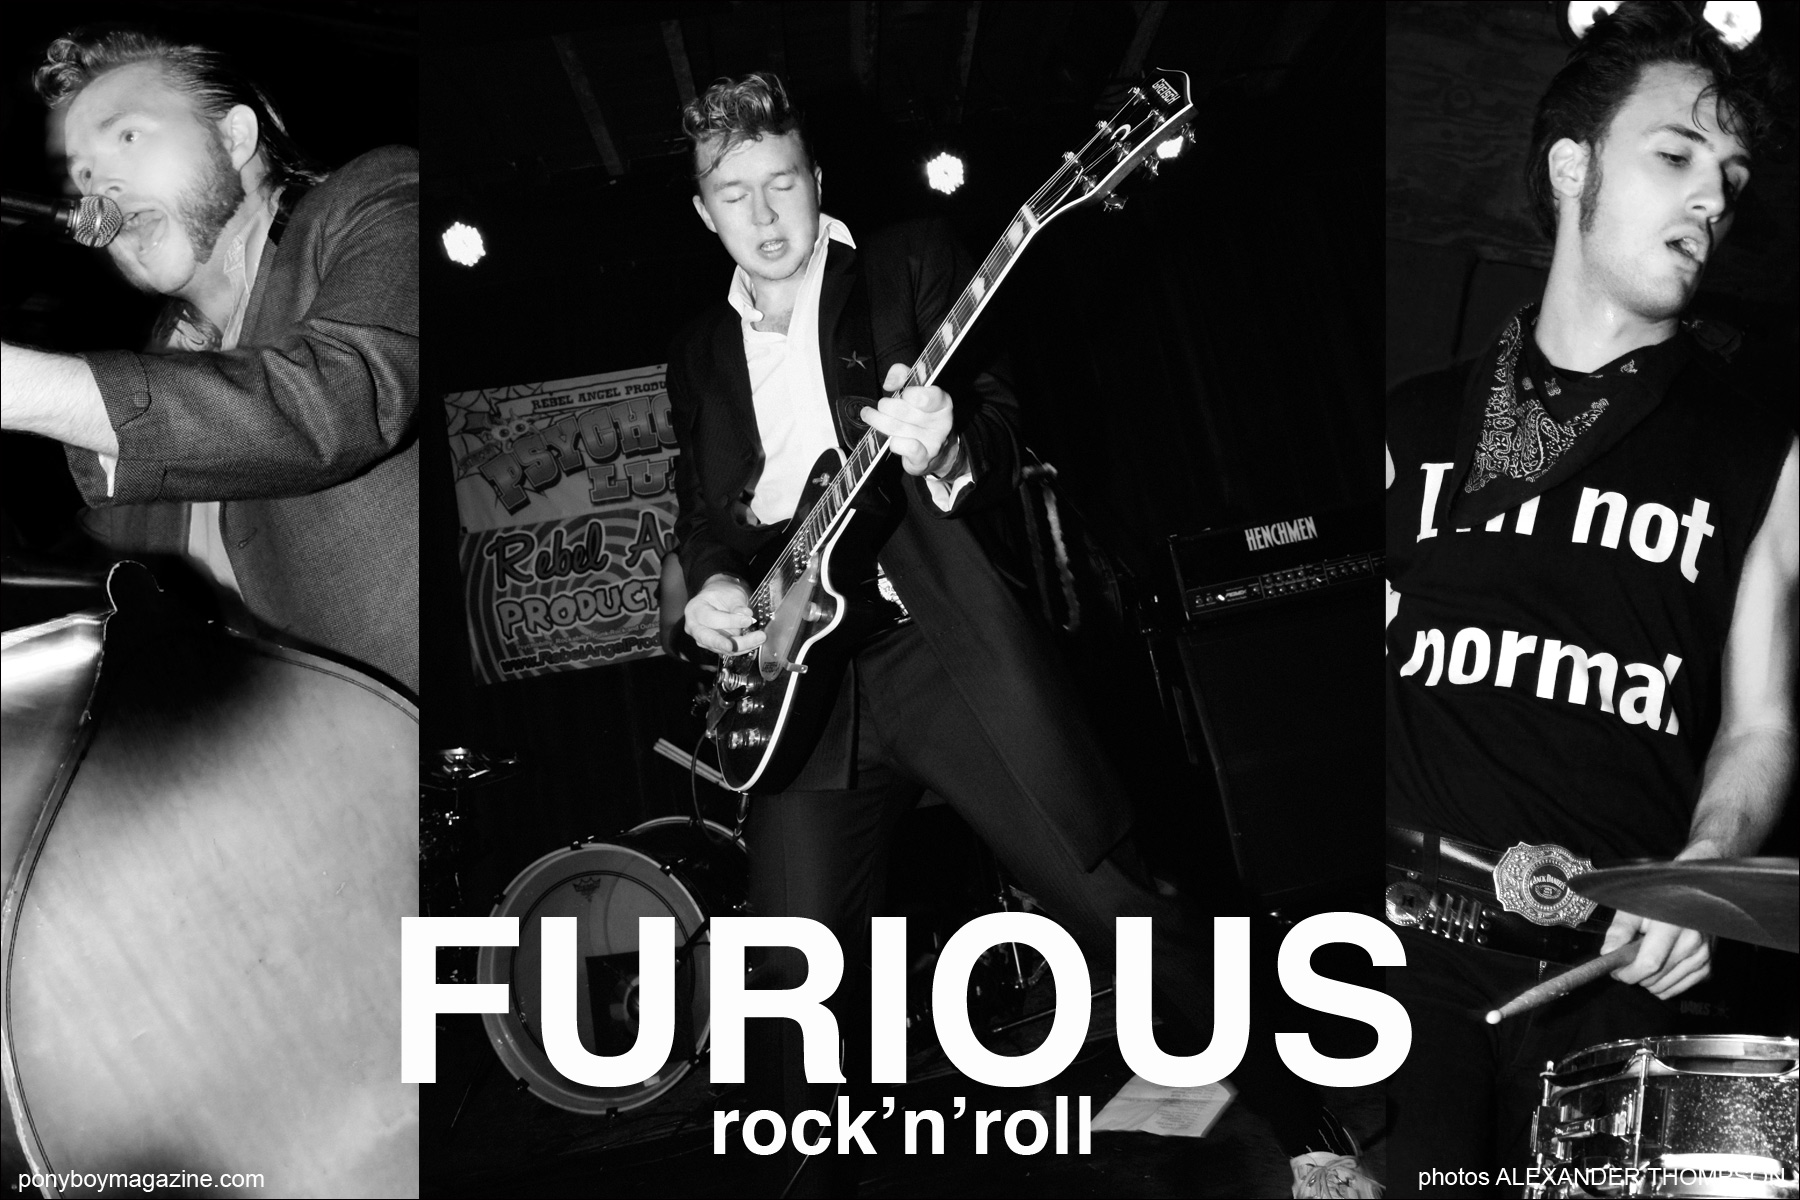 Furious band opener, Ponyboy Magazine. Photographed by Alexander Thompson in New York City.